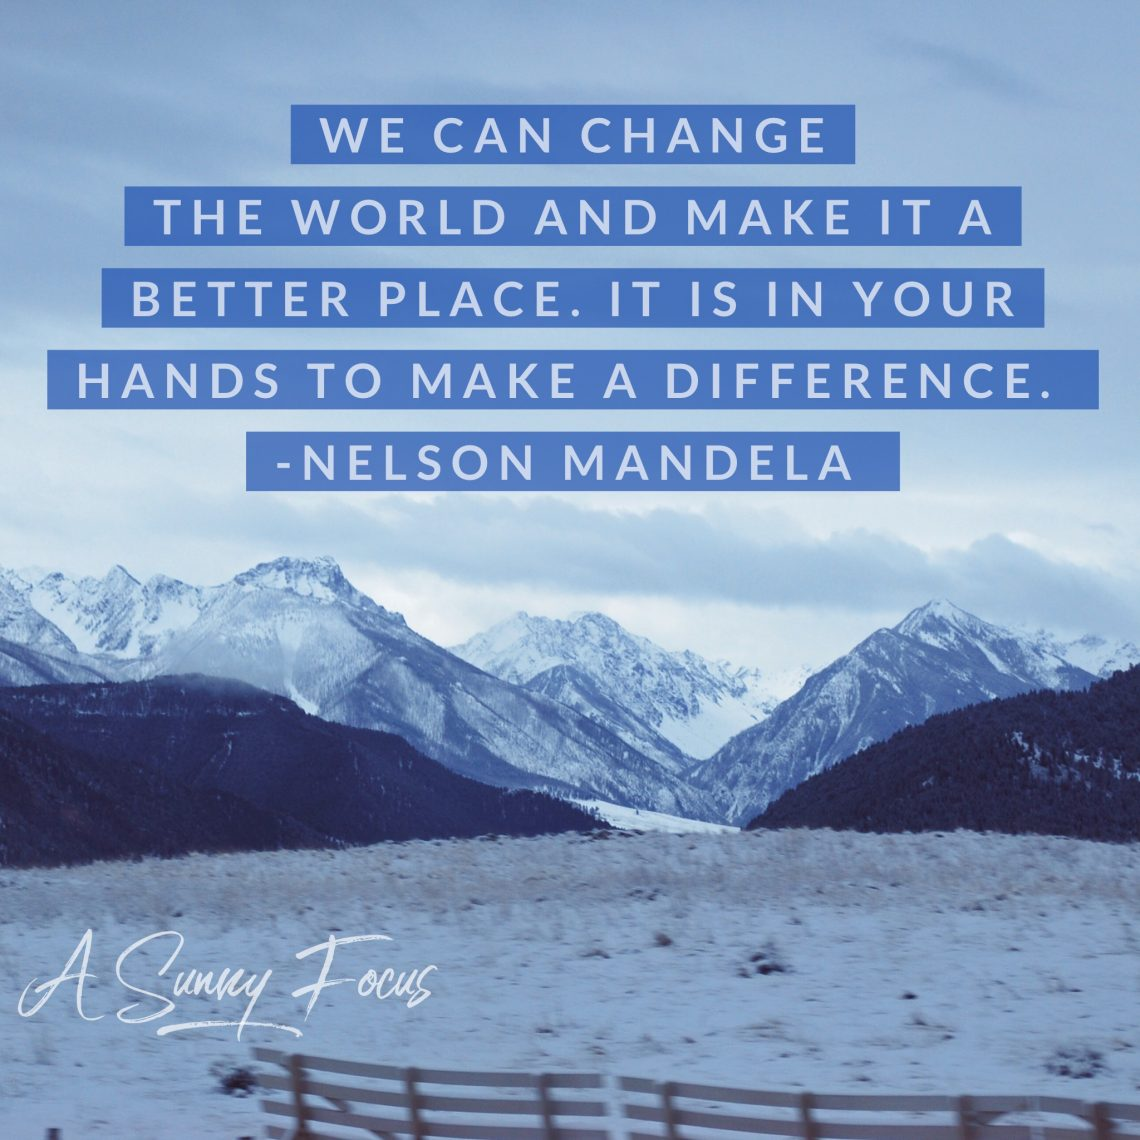 Your hands make a difference